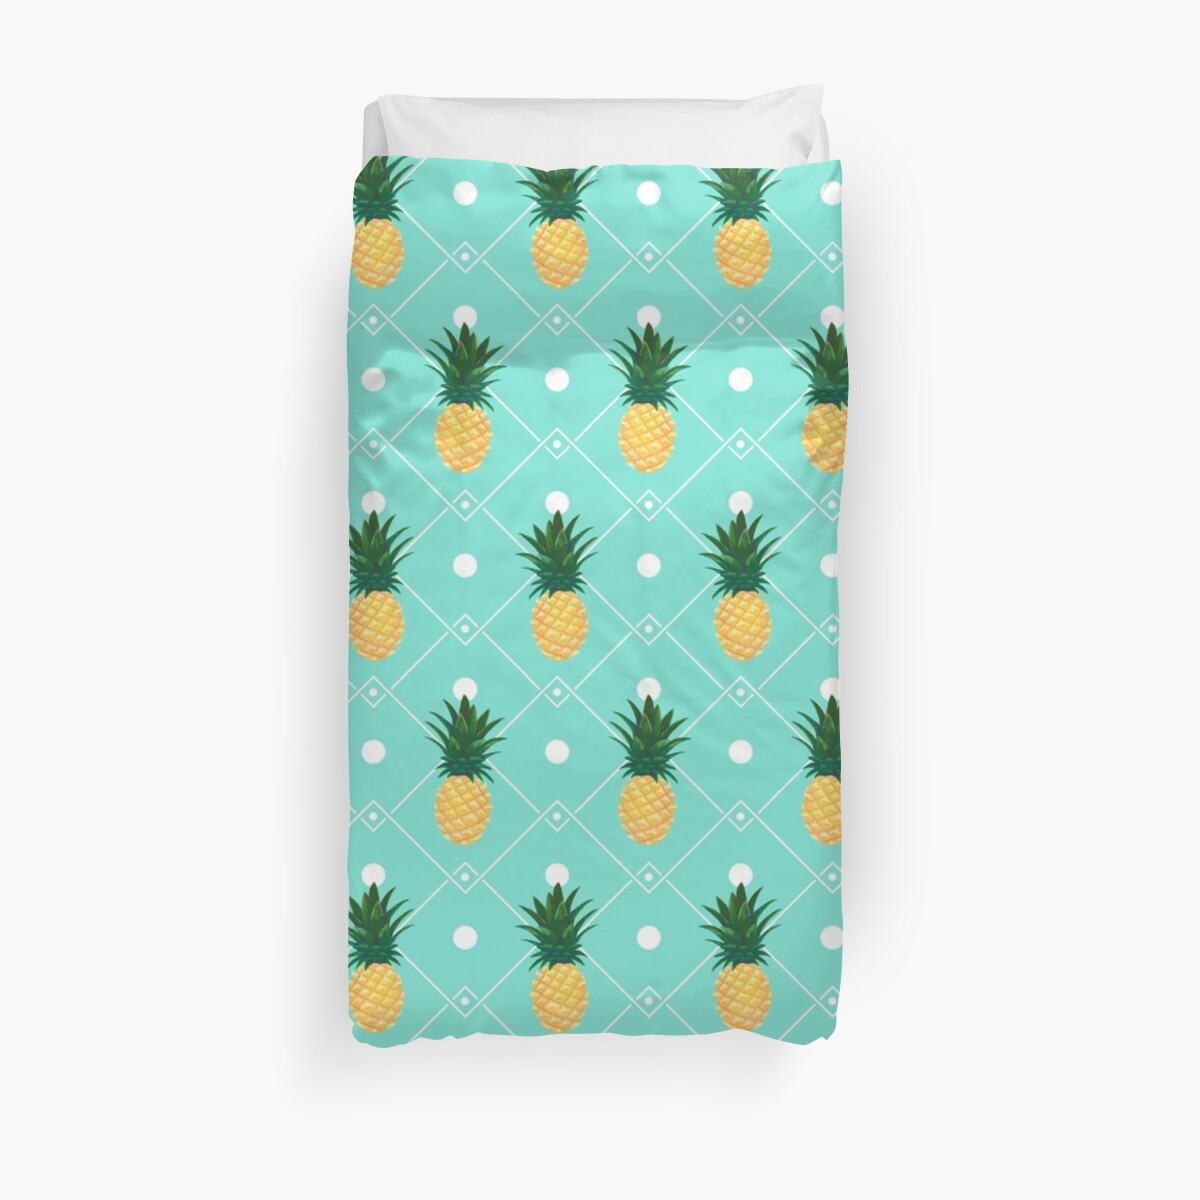 Pineapples by Aimee Cozza